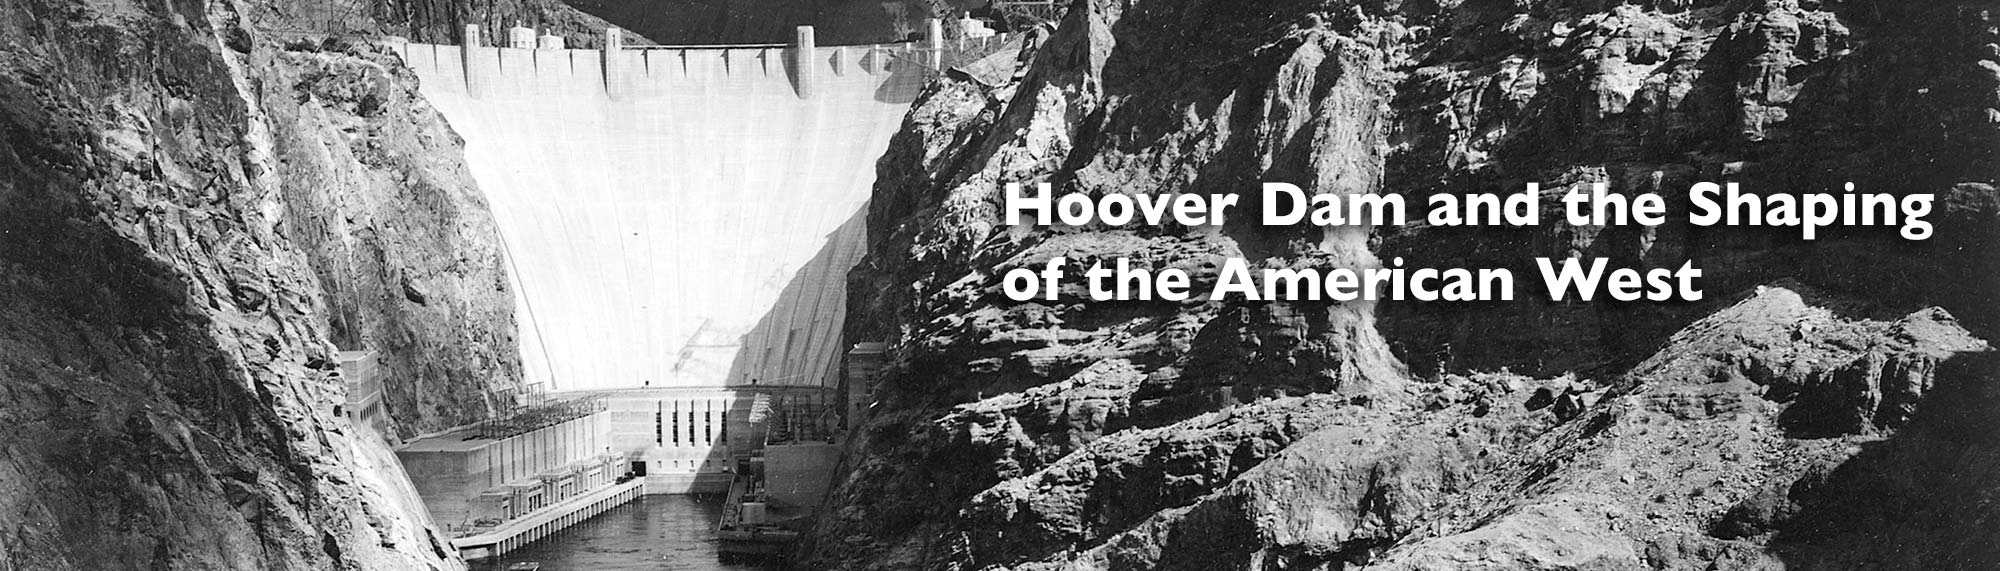 Hoover Dam and the Shaping of the American West